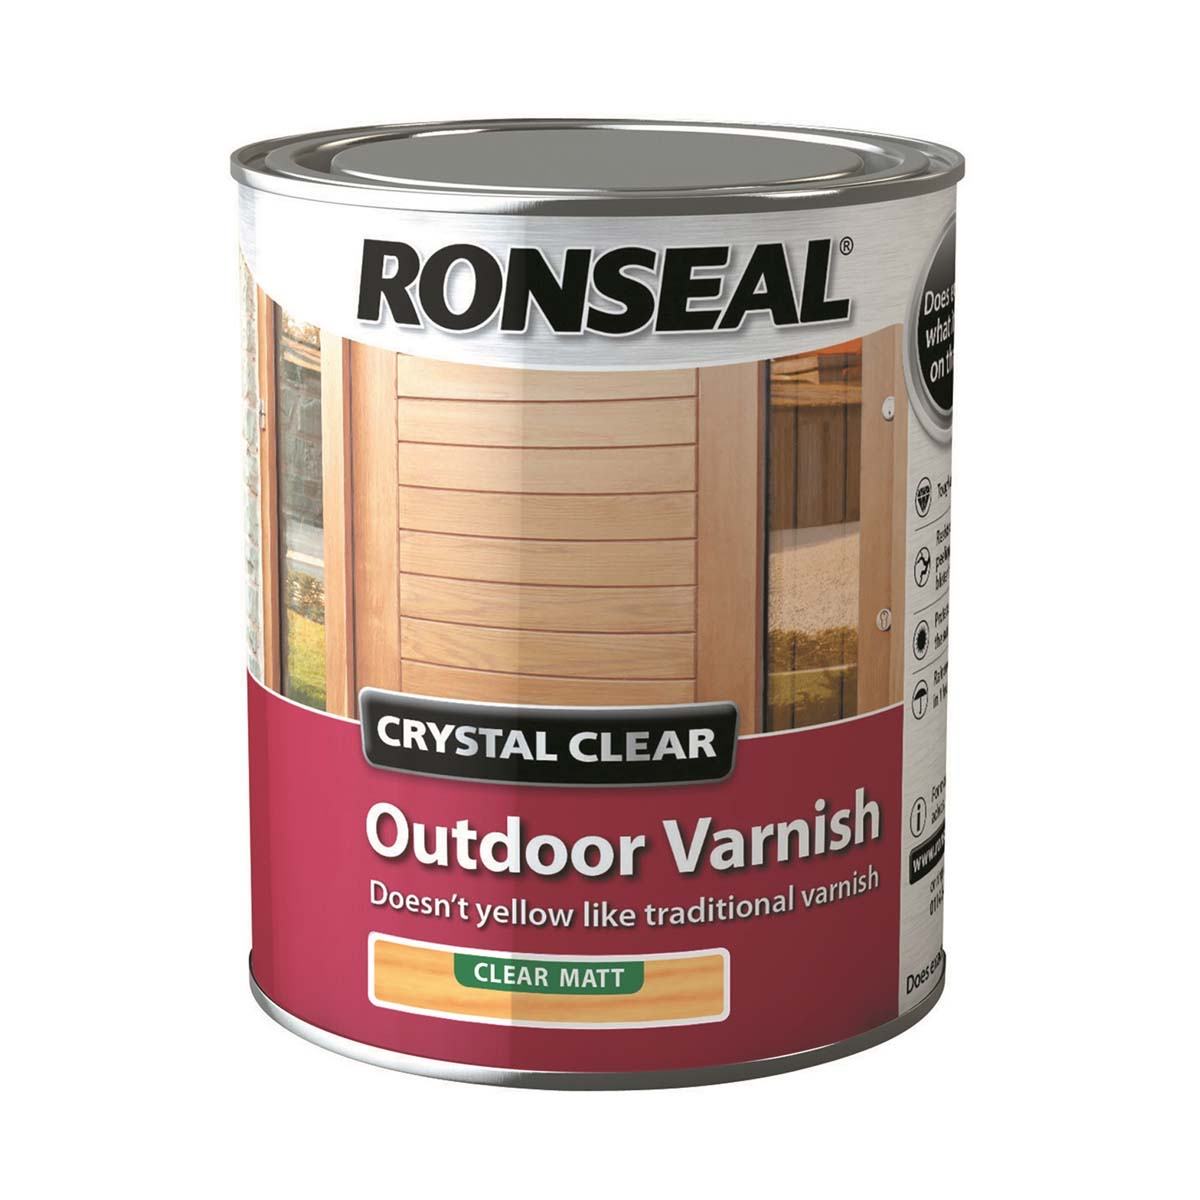 Ronseal Crystal Clear Outdoor Varnish Matt 750ml (37368)